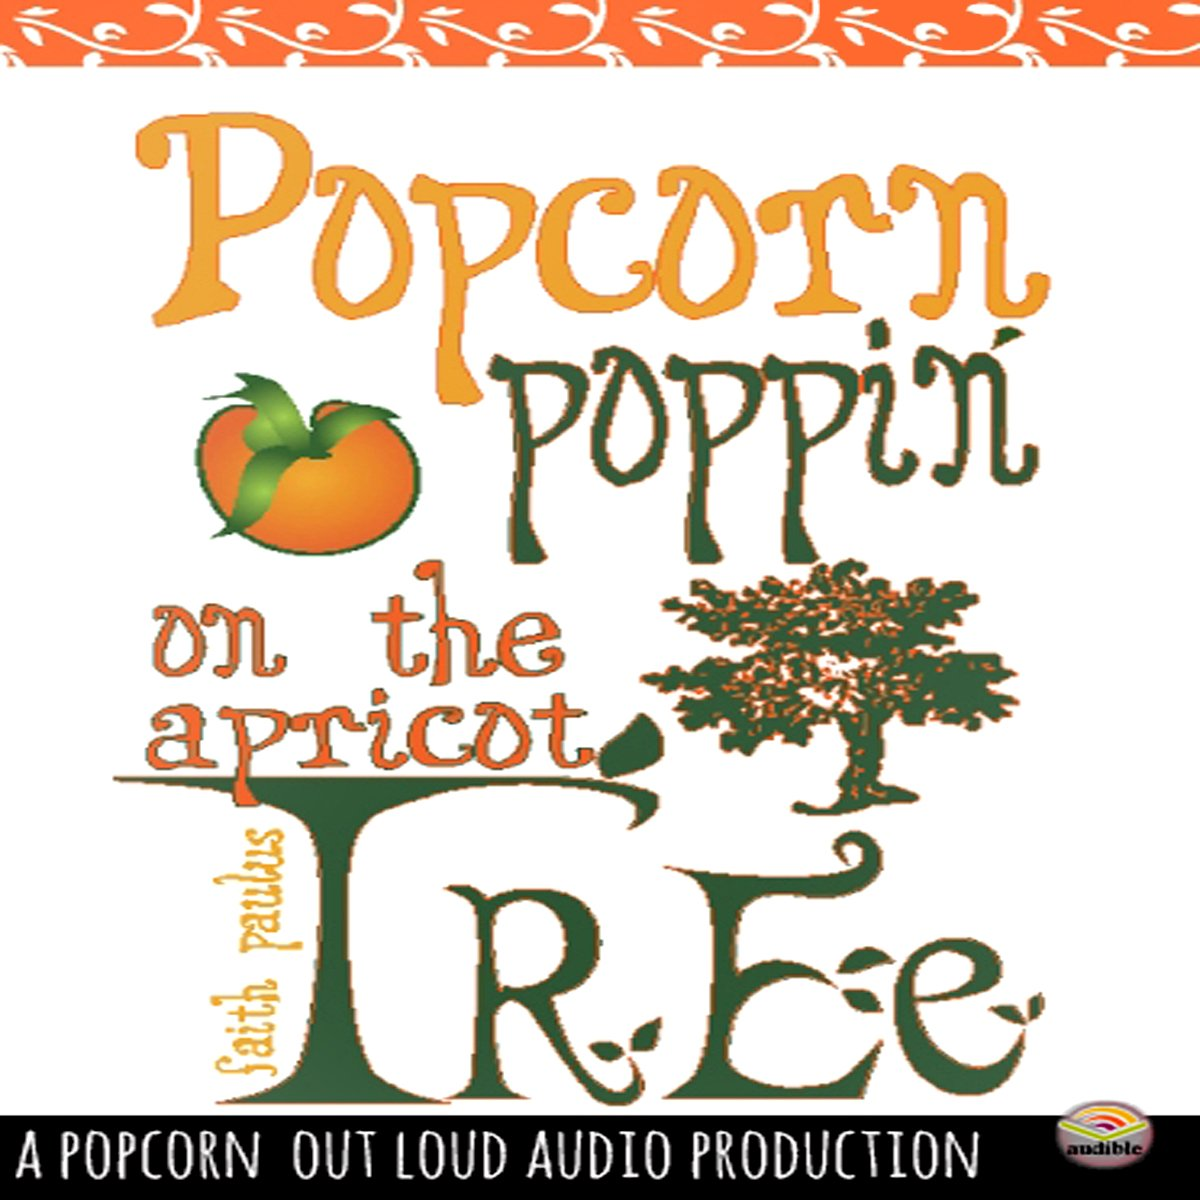 Popcorn Poppin' on the Apricot Tree